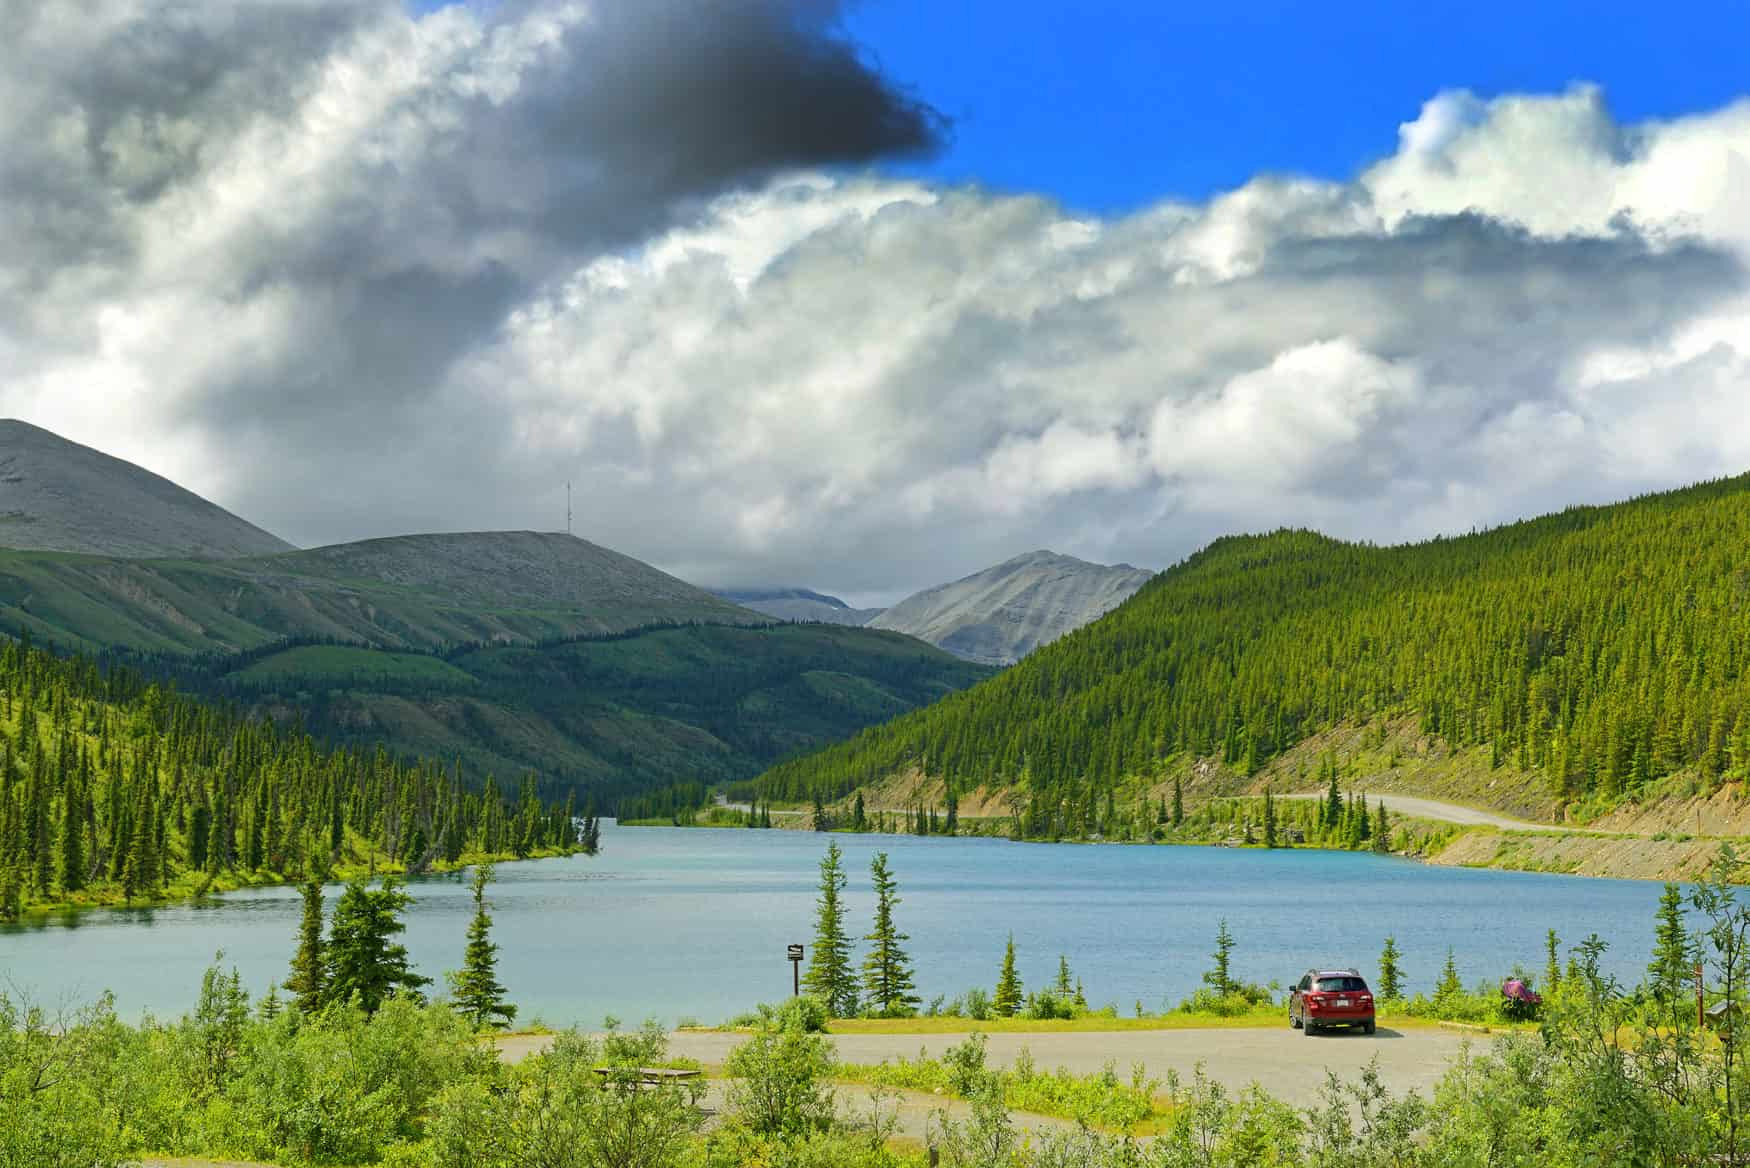 Summit Lake, Stone Mountain Provincial Park in British Columbia am Alaska Highway, Kanada